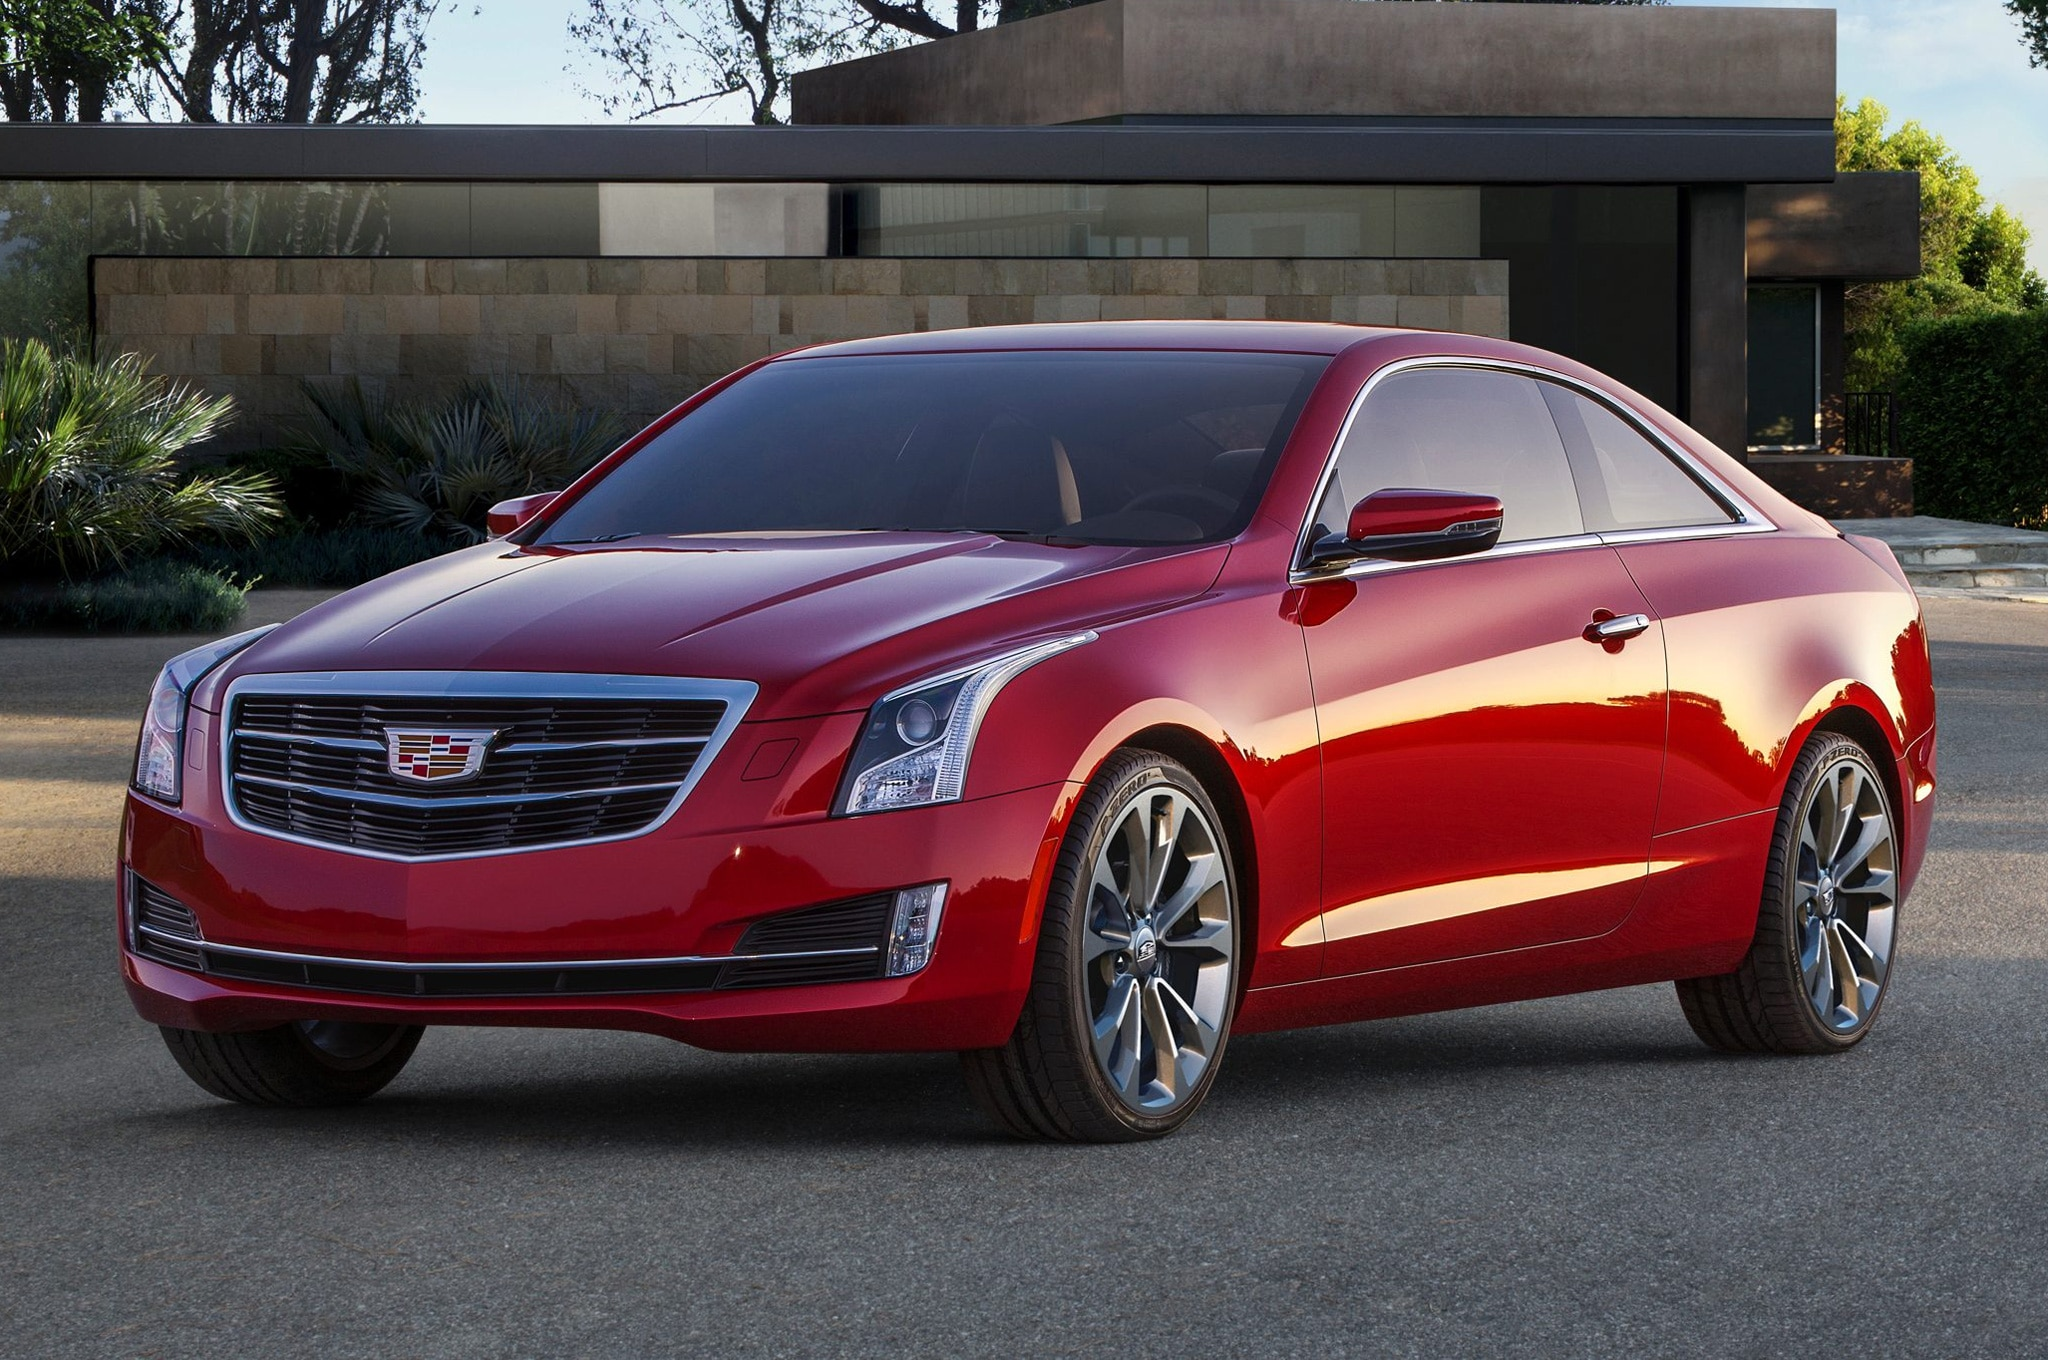 2015 Cadillac ATS Coupe Red Front Side View